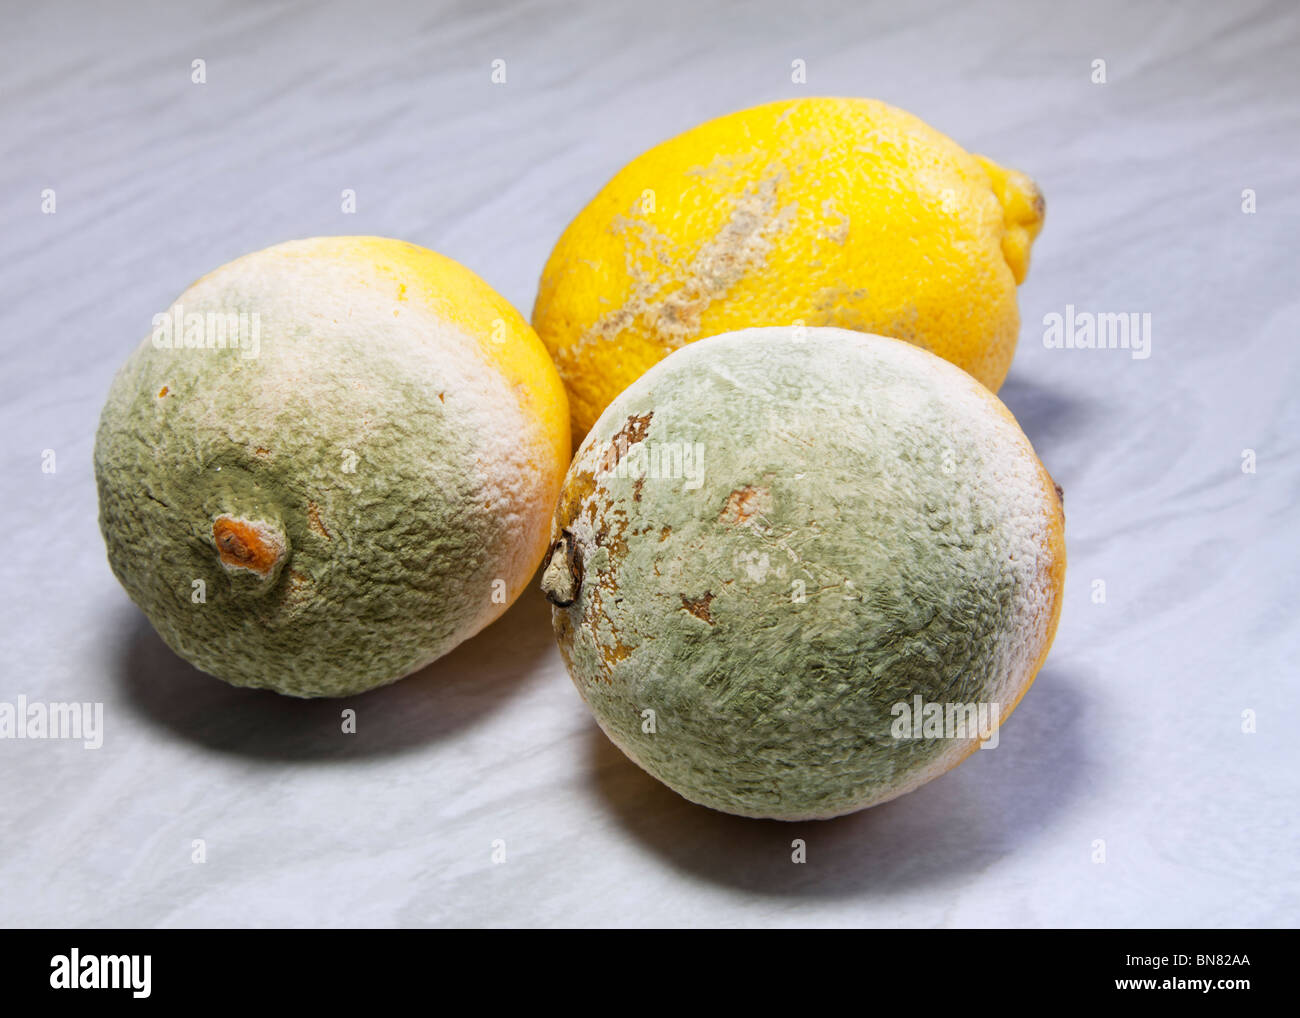 Rotten old lemons, two covered with green penicillium fungus mould and one just going over. - Stock Image